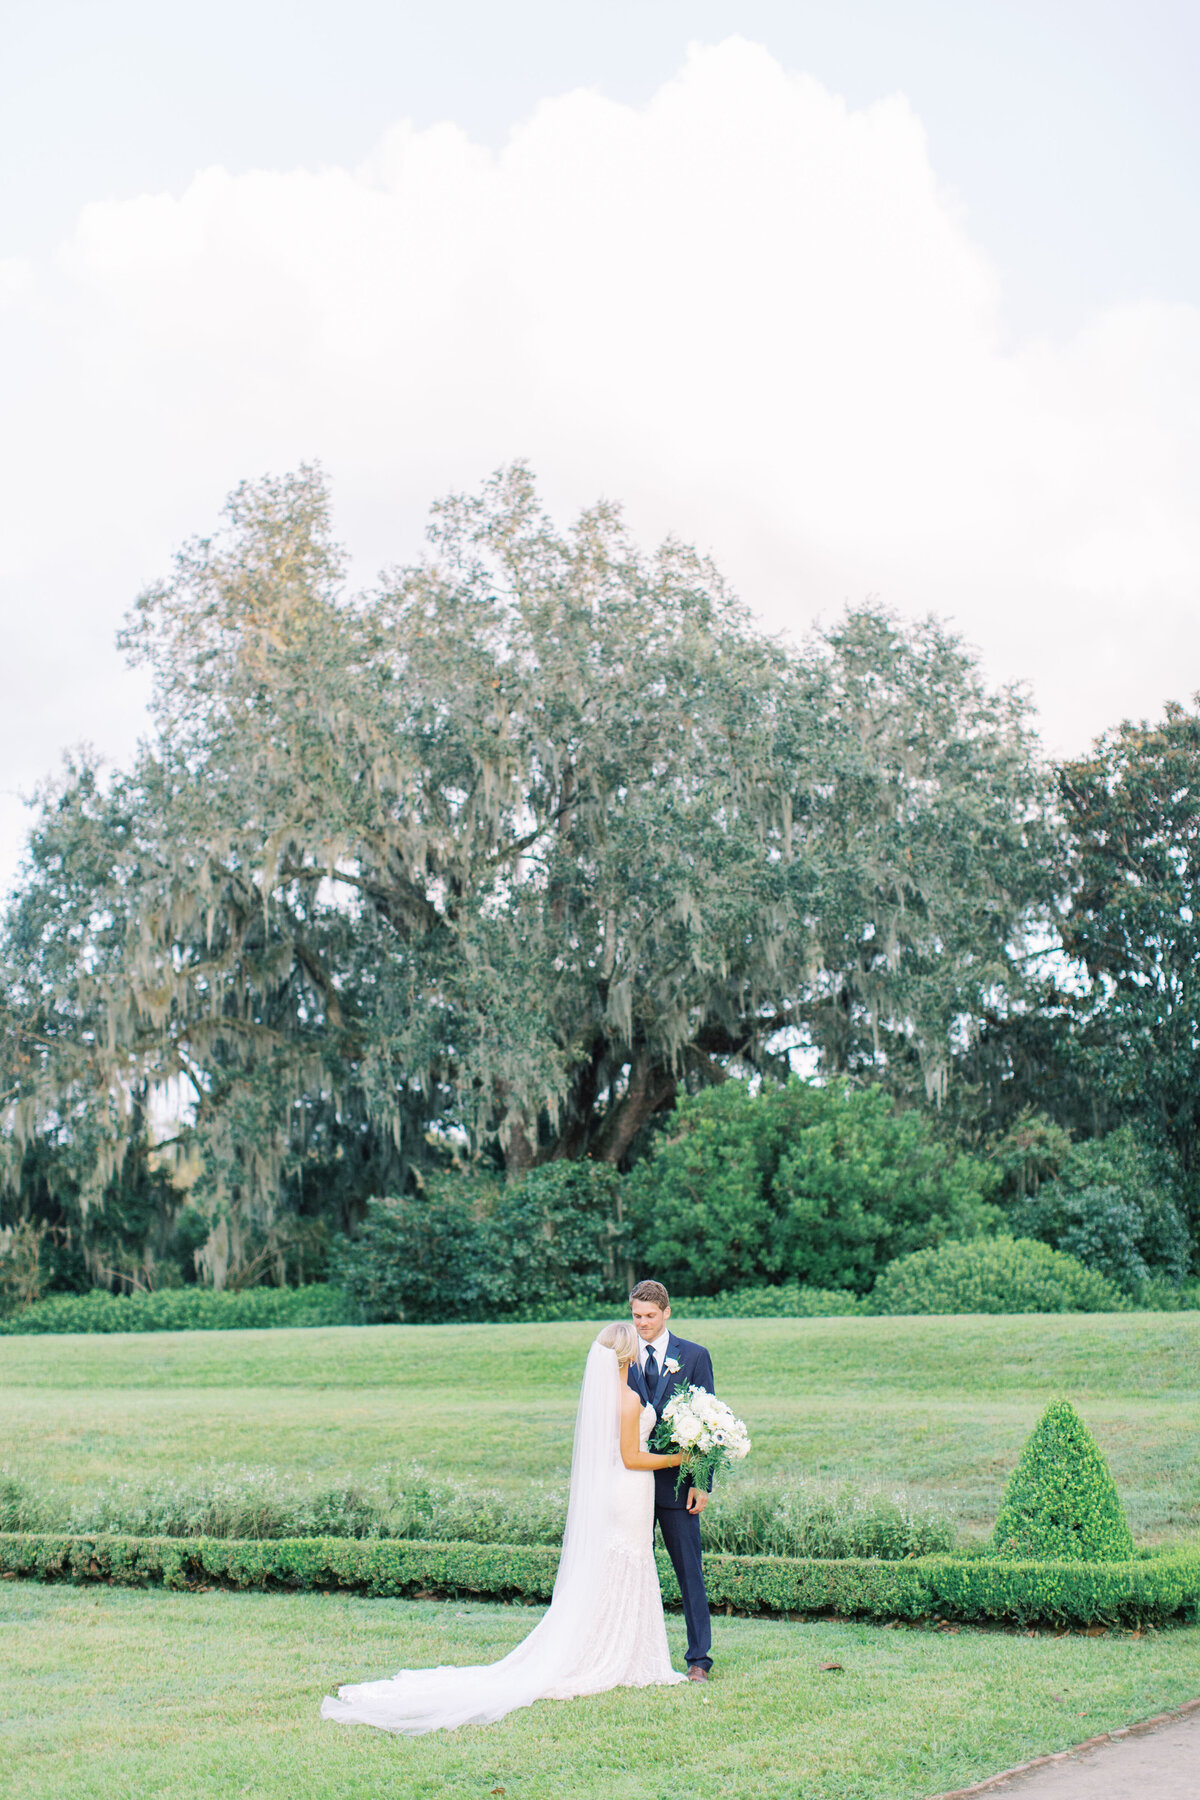 Melton_Wedding__Middleton_Place_Plantation_Charleston_South_Carolina_Jacksonville_Florida_Devon_Donnahoo_Photography__0770